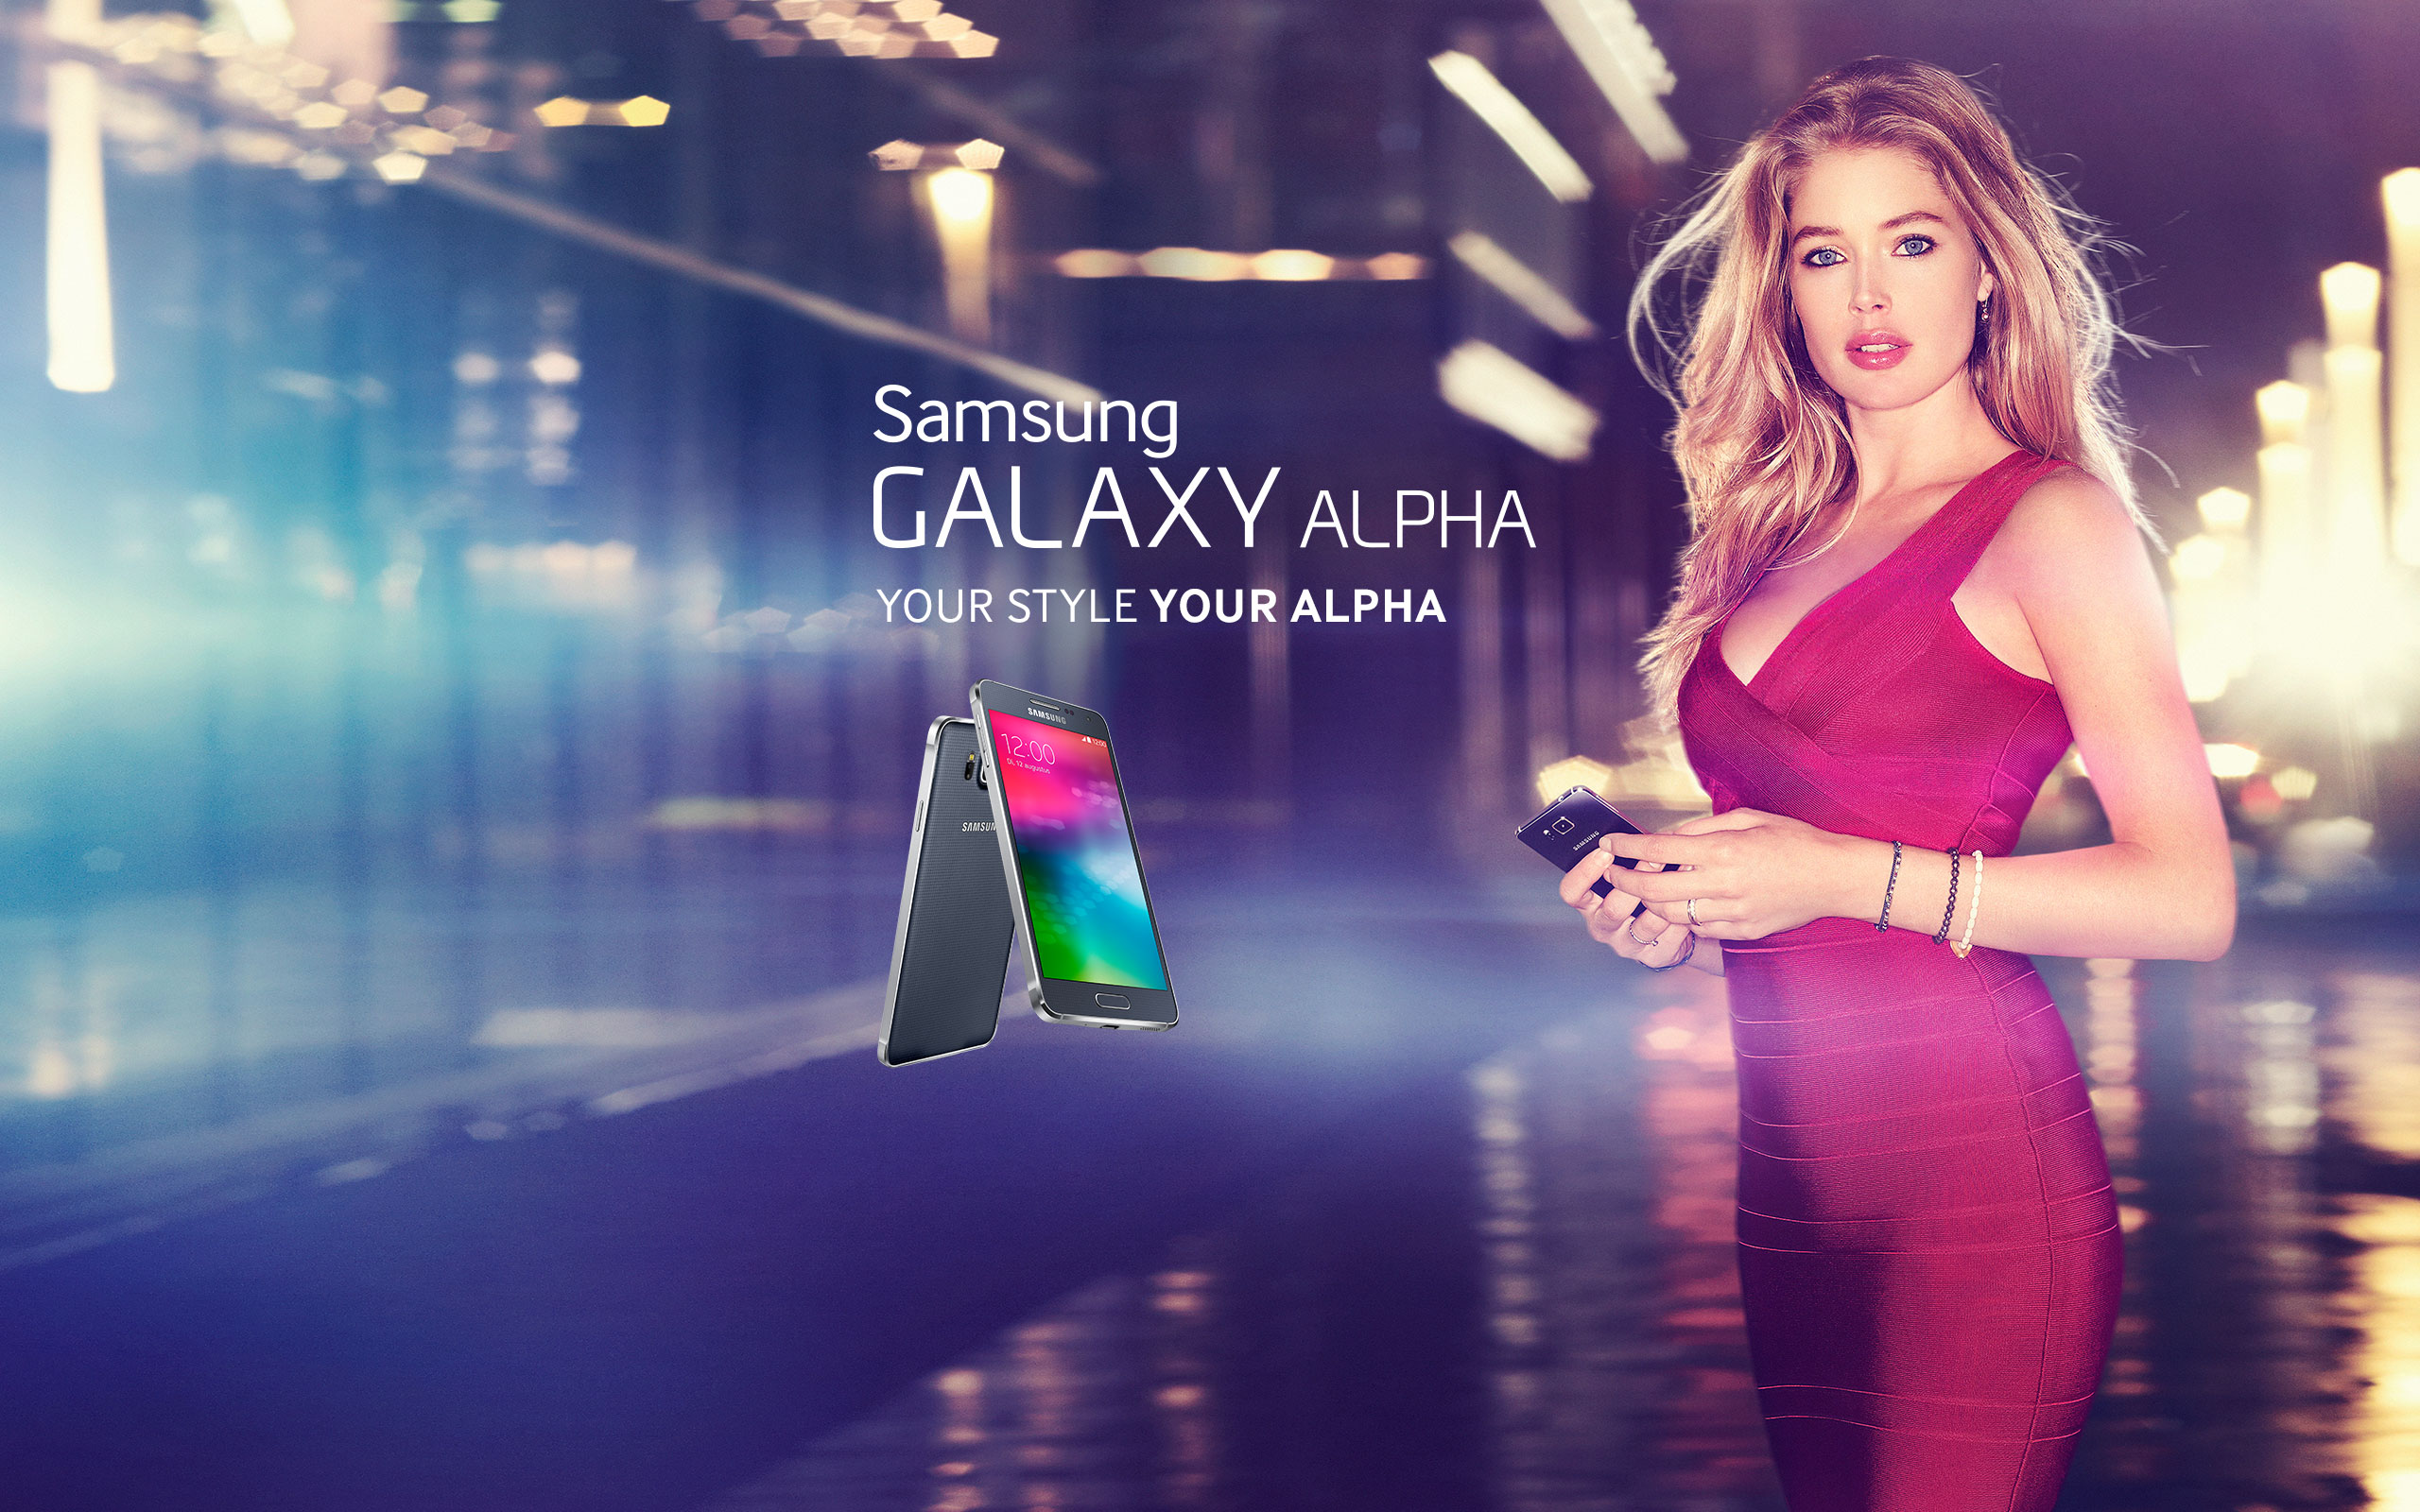 Samsung-Galaxy-Alpha-Commercial-Doutzen-Kroes-3